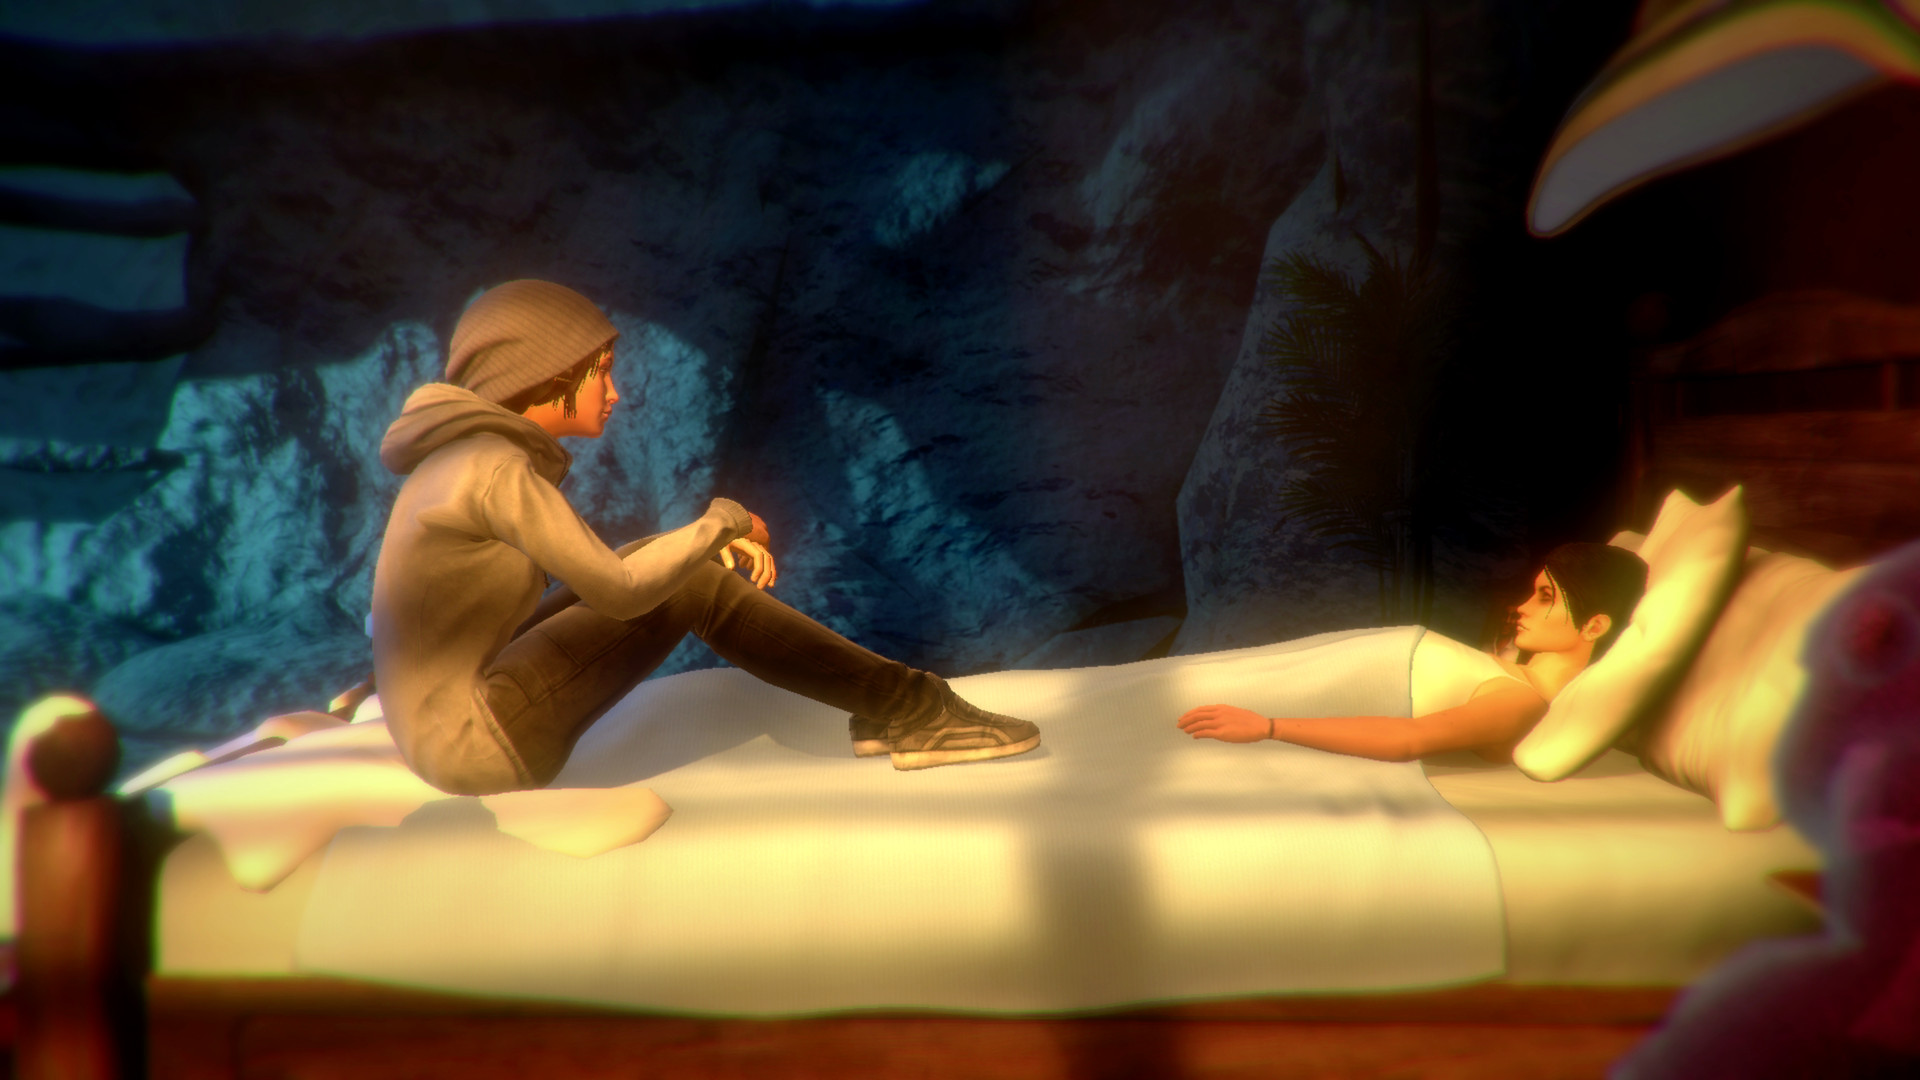 Dreamfall Chapters - Book 1: Reborn review: Dreams to come